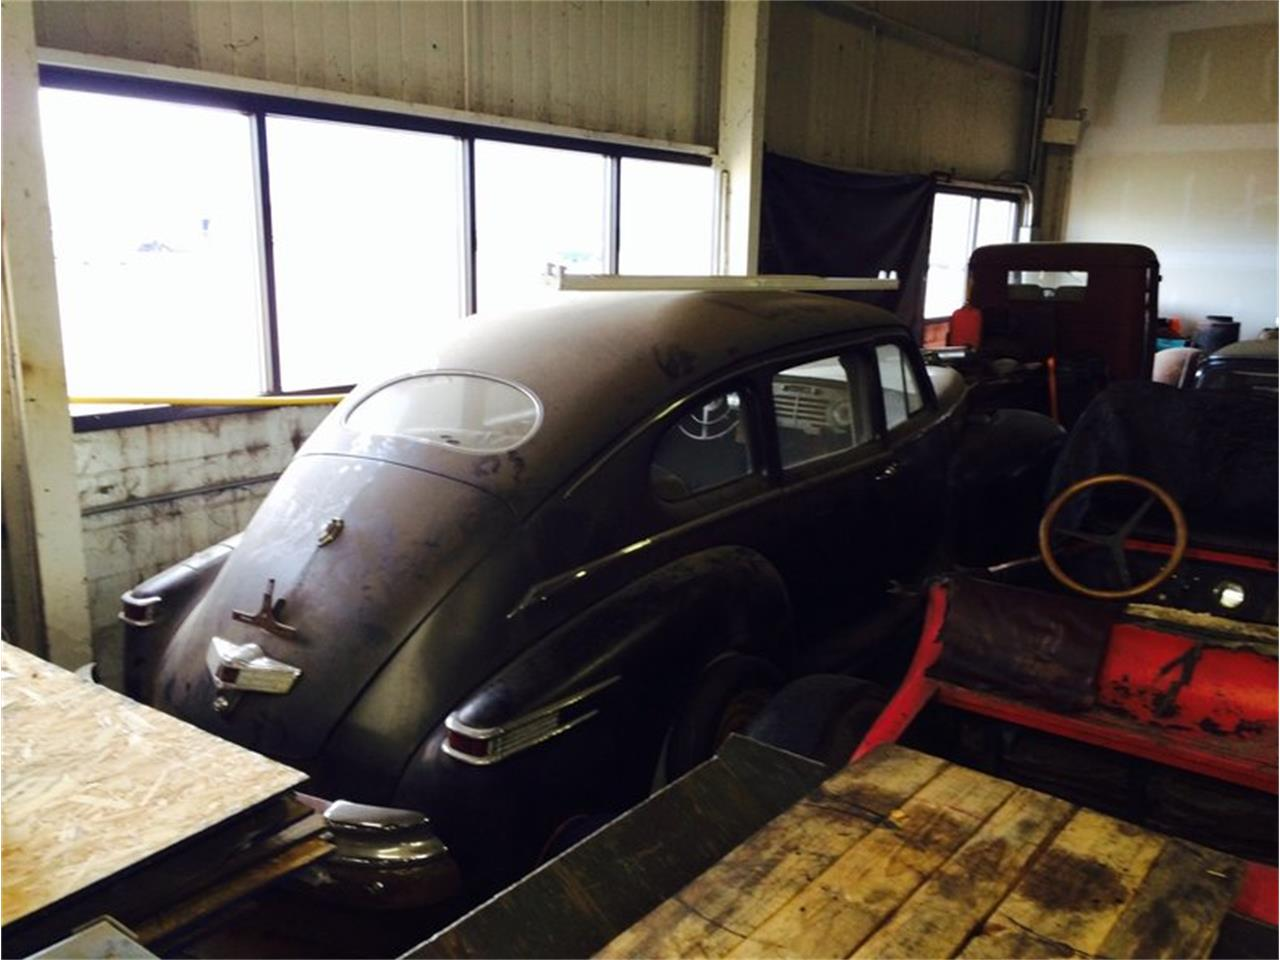 Large Picture of Classic 1948 Lincoln Zepher 12 cyl No motor or seats - $8,995.00 Offered by Classic Auto Mall - LHDK